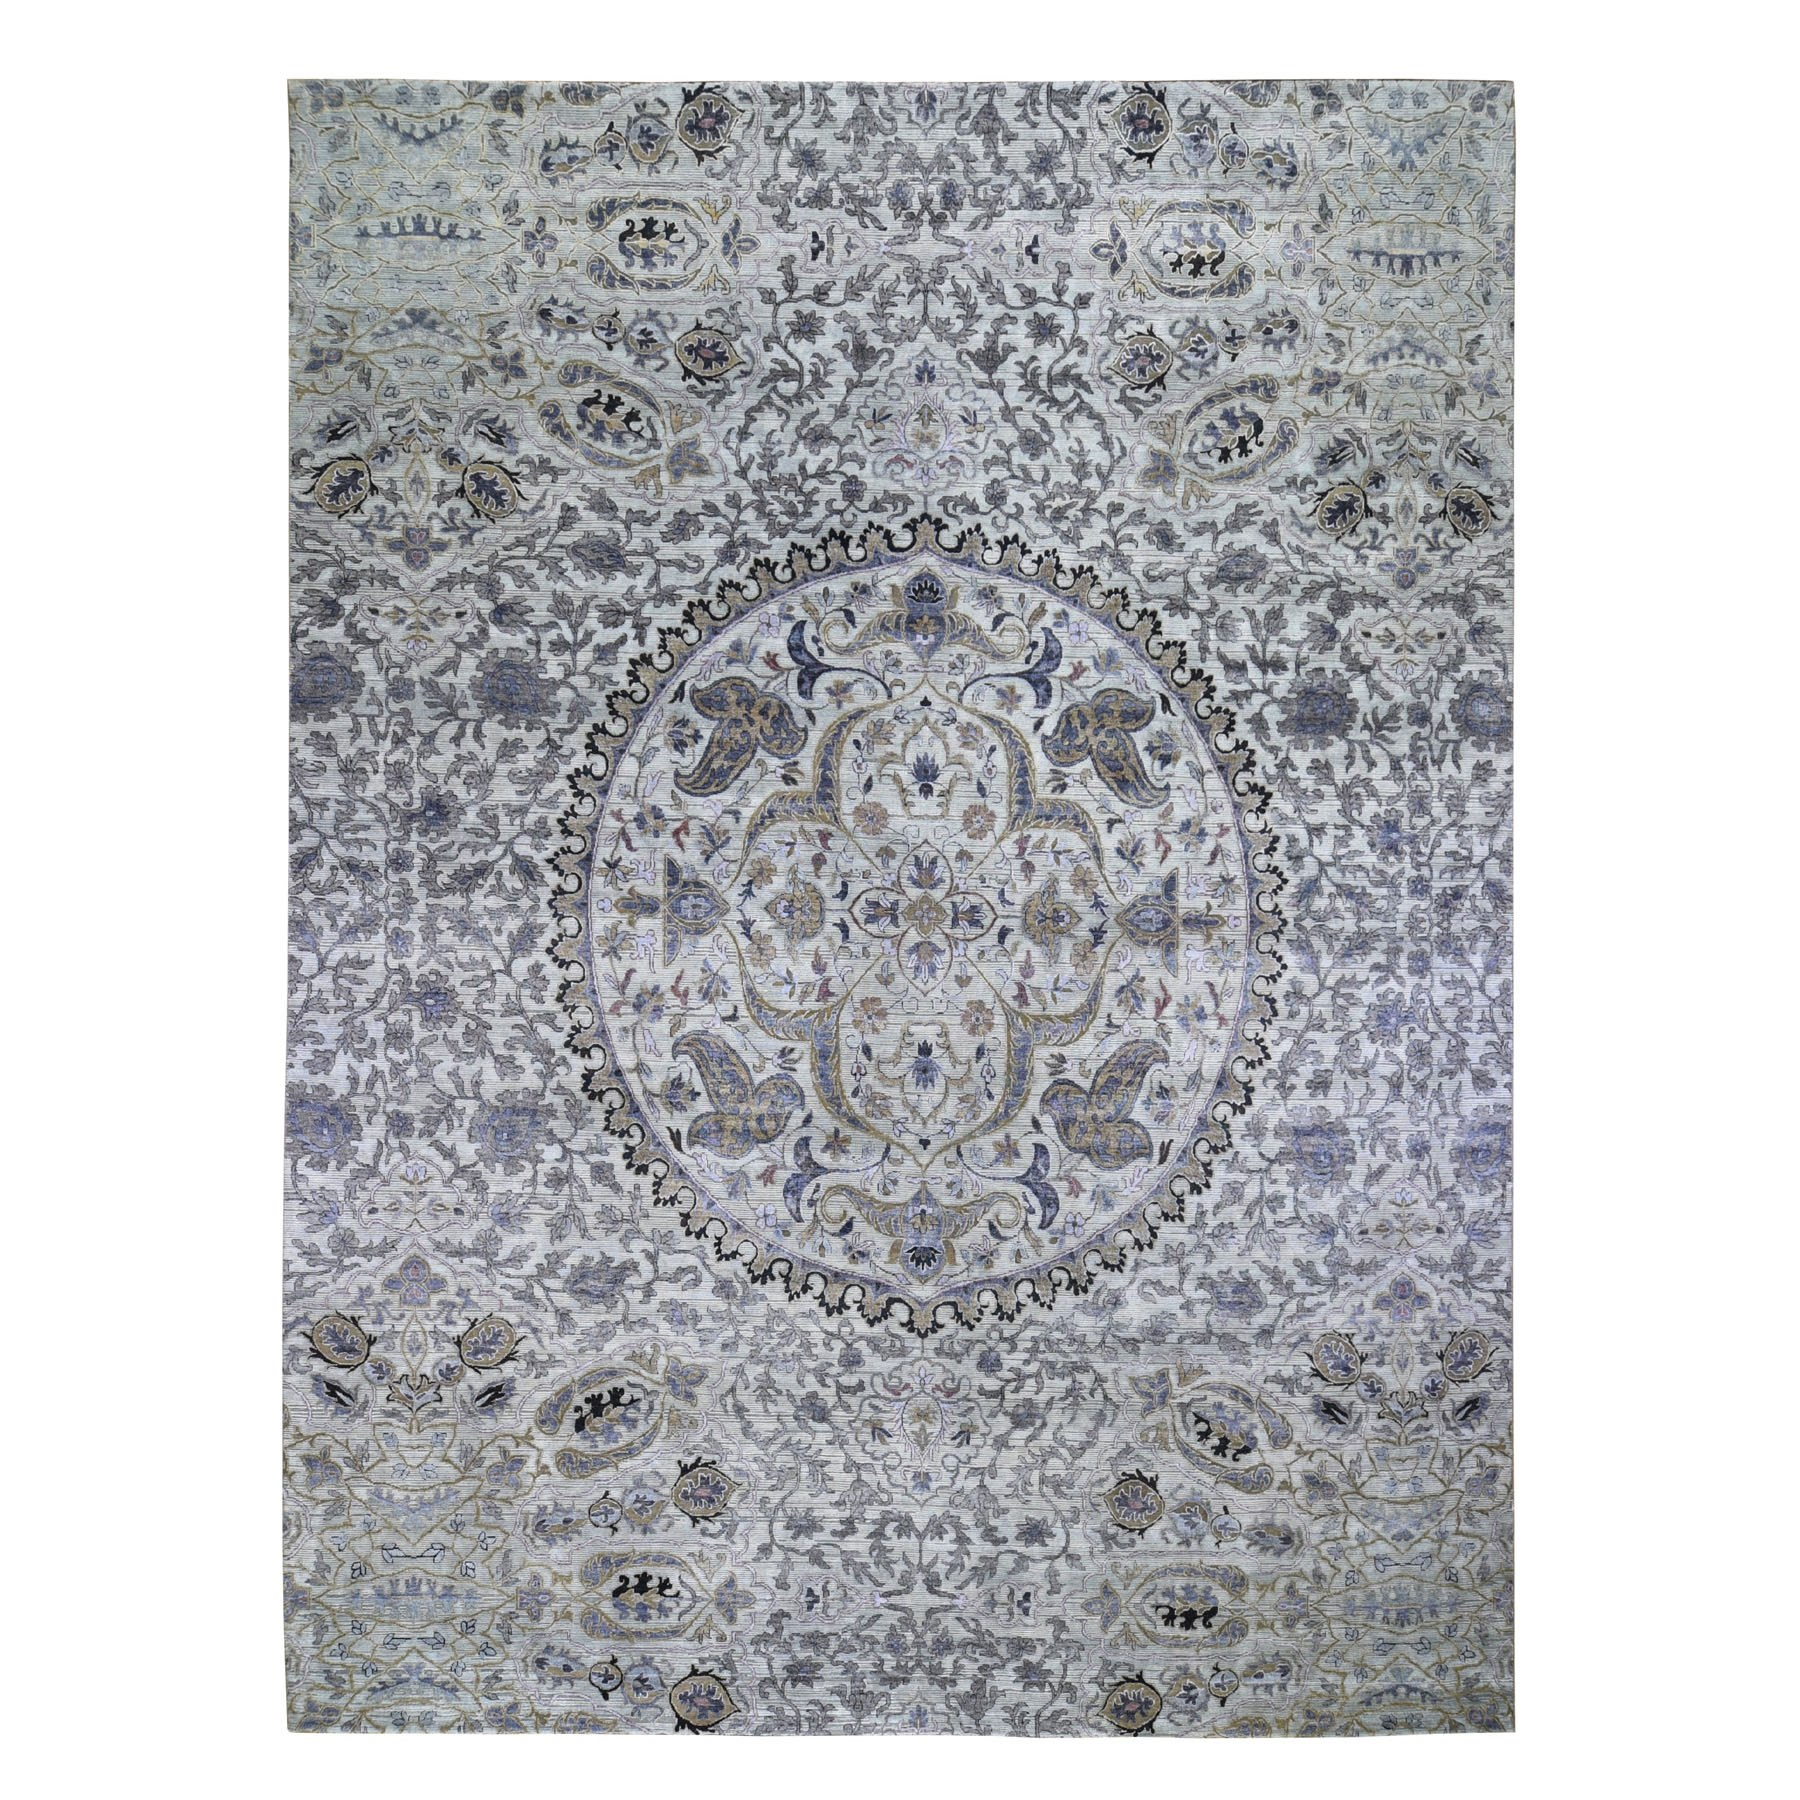 12'X15' The Maharaja,Oversized Pure Silk With Textured Wool Hand Knotted Oriental Rug moad9da0